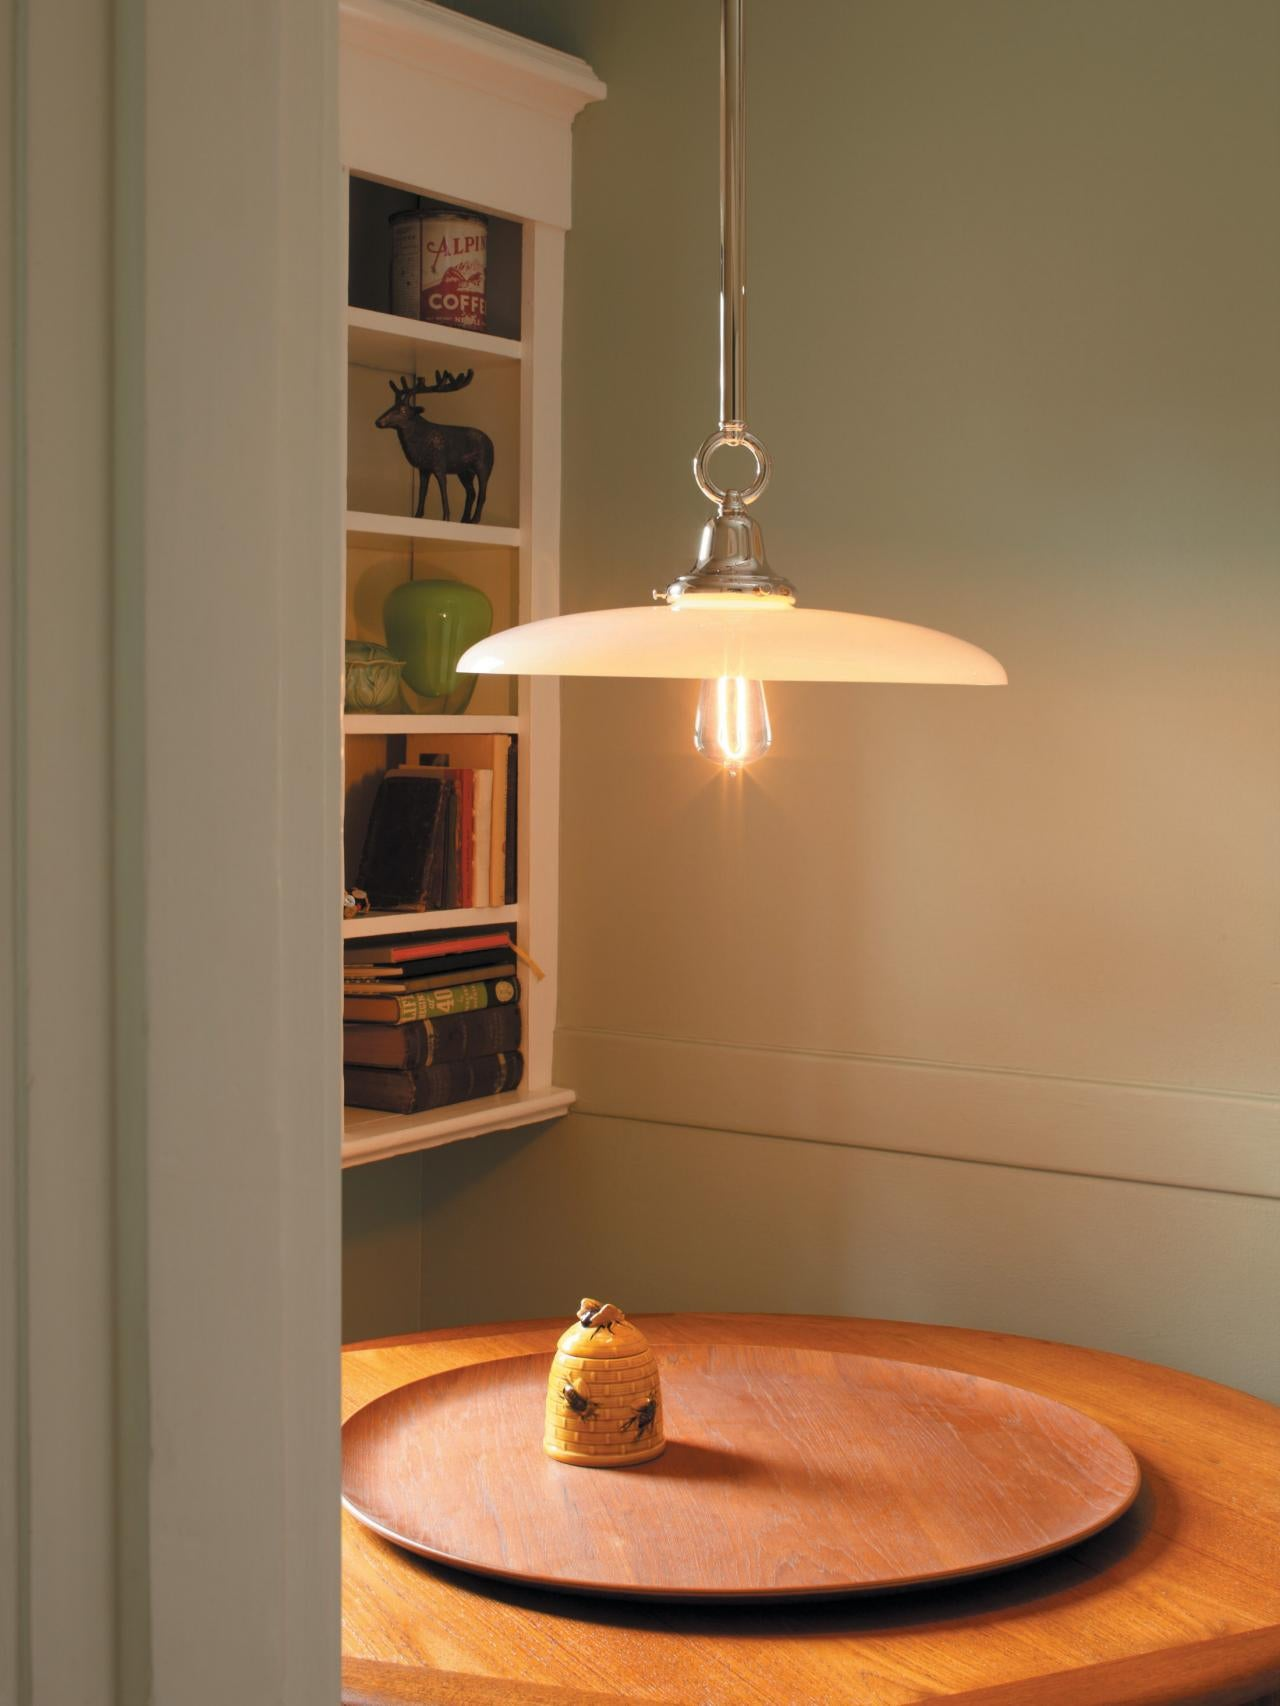 Round white lampshade below head height, suspended over a round wooden table